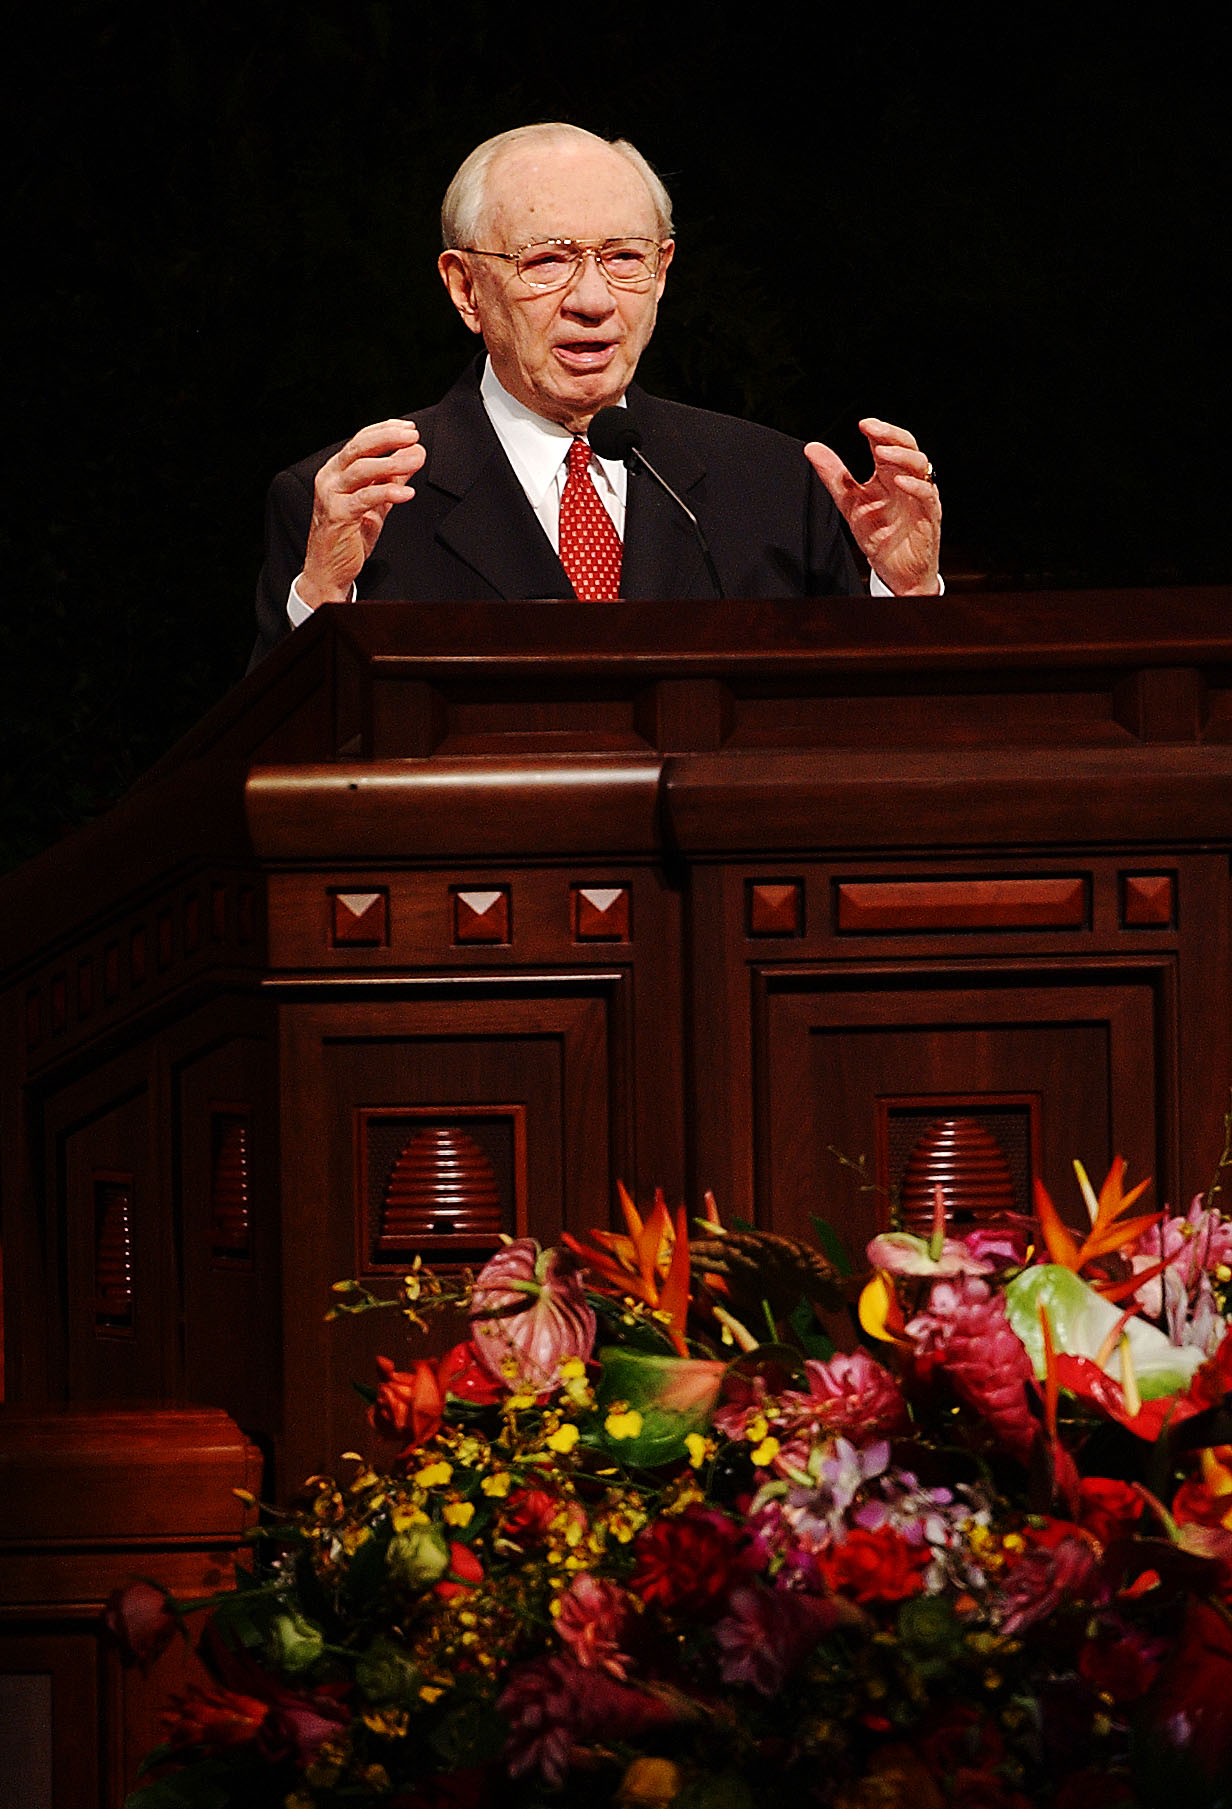 President Hinckley speaks of the Nauvoo Temple during general conference on Oct. 5, 2002.